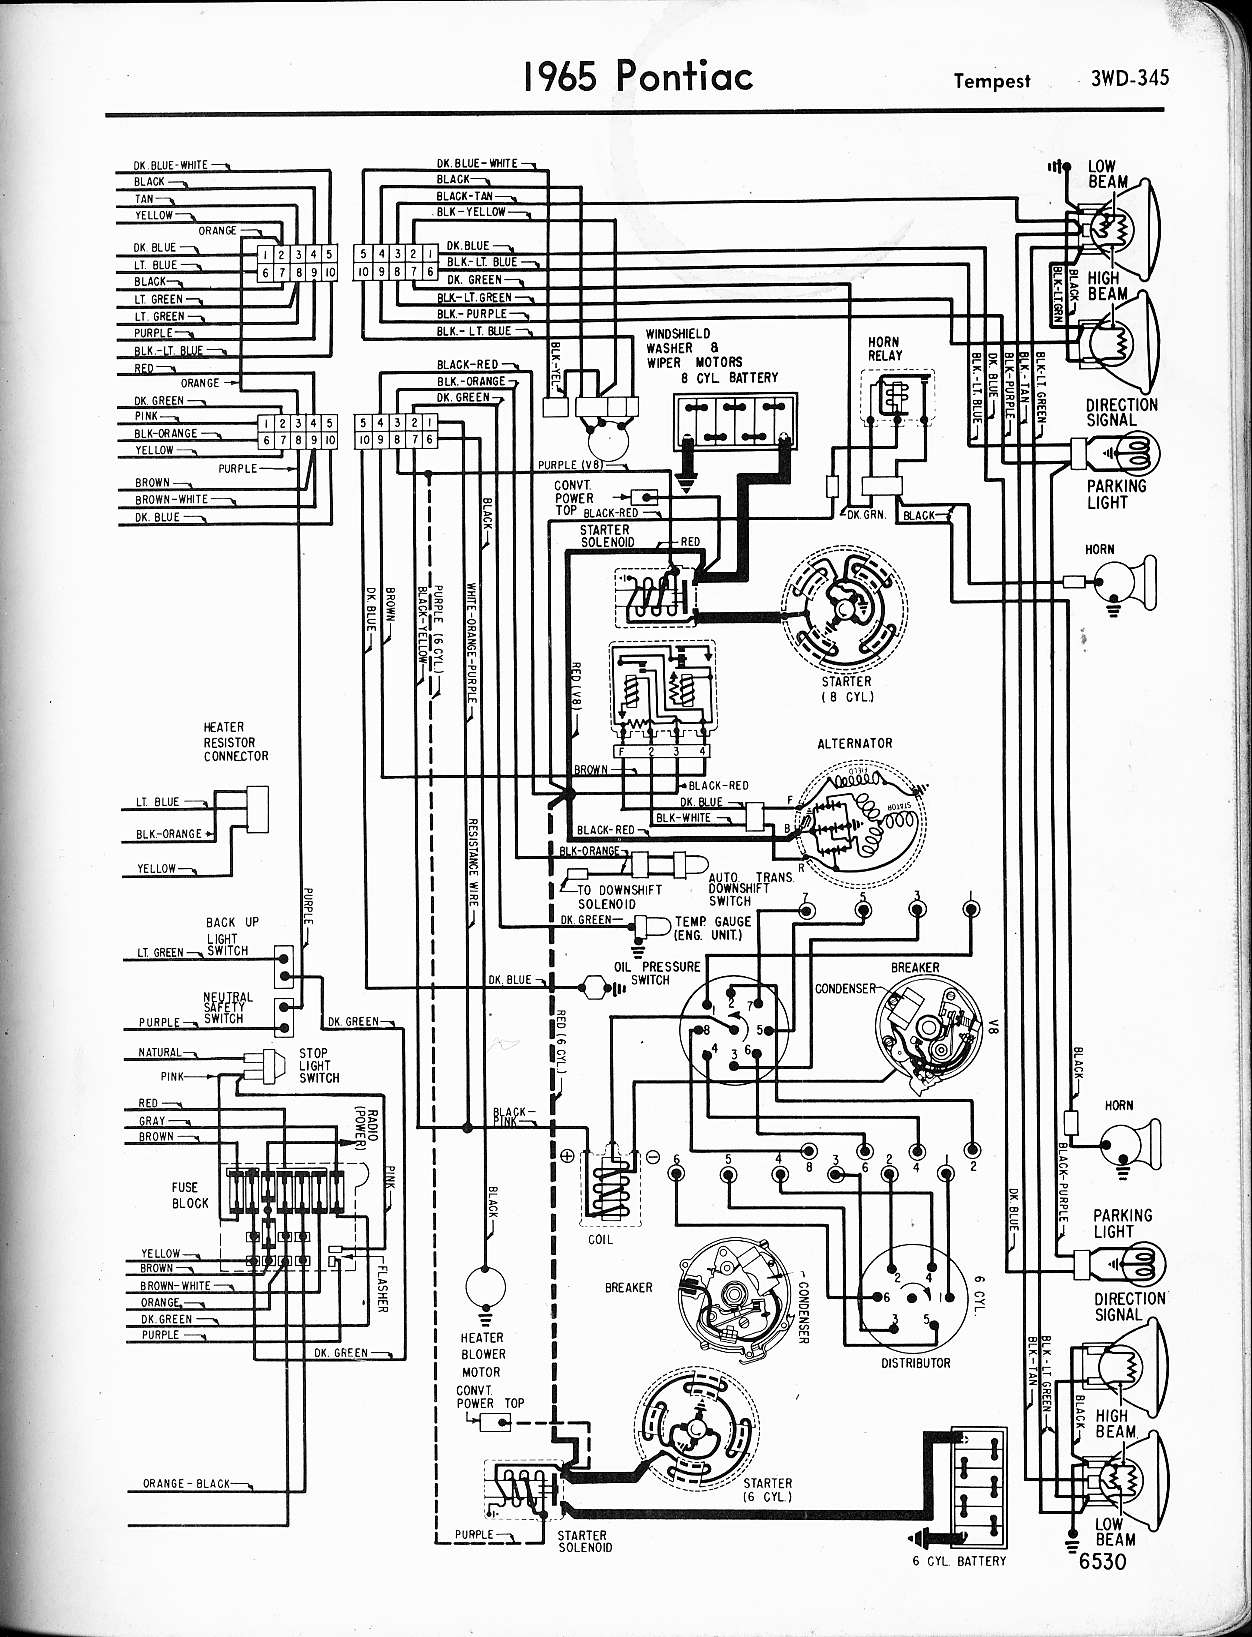 1964 gto wiring diagram tempest lemans gto wiring diagram manual wallace racing wiring diagrams 1965 tempest left page